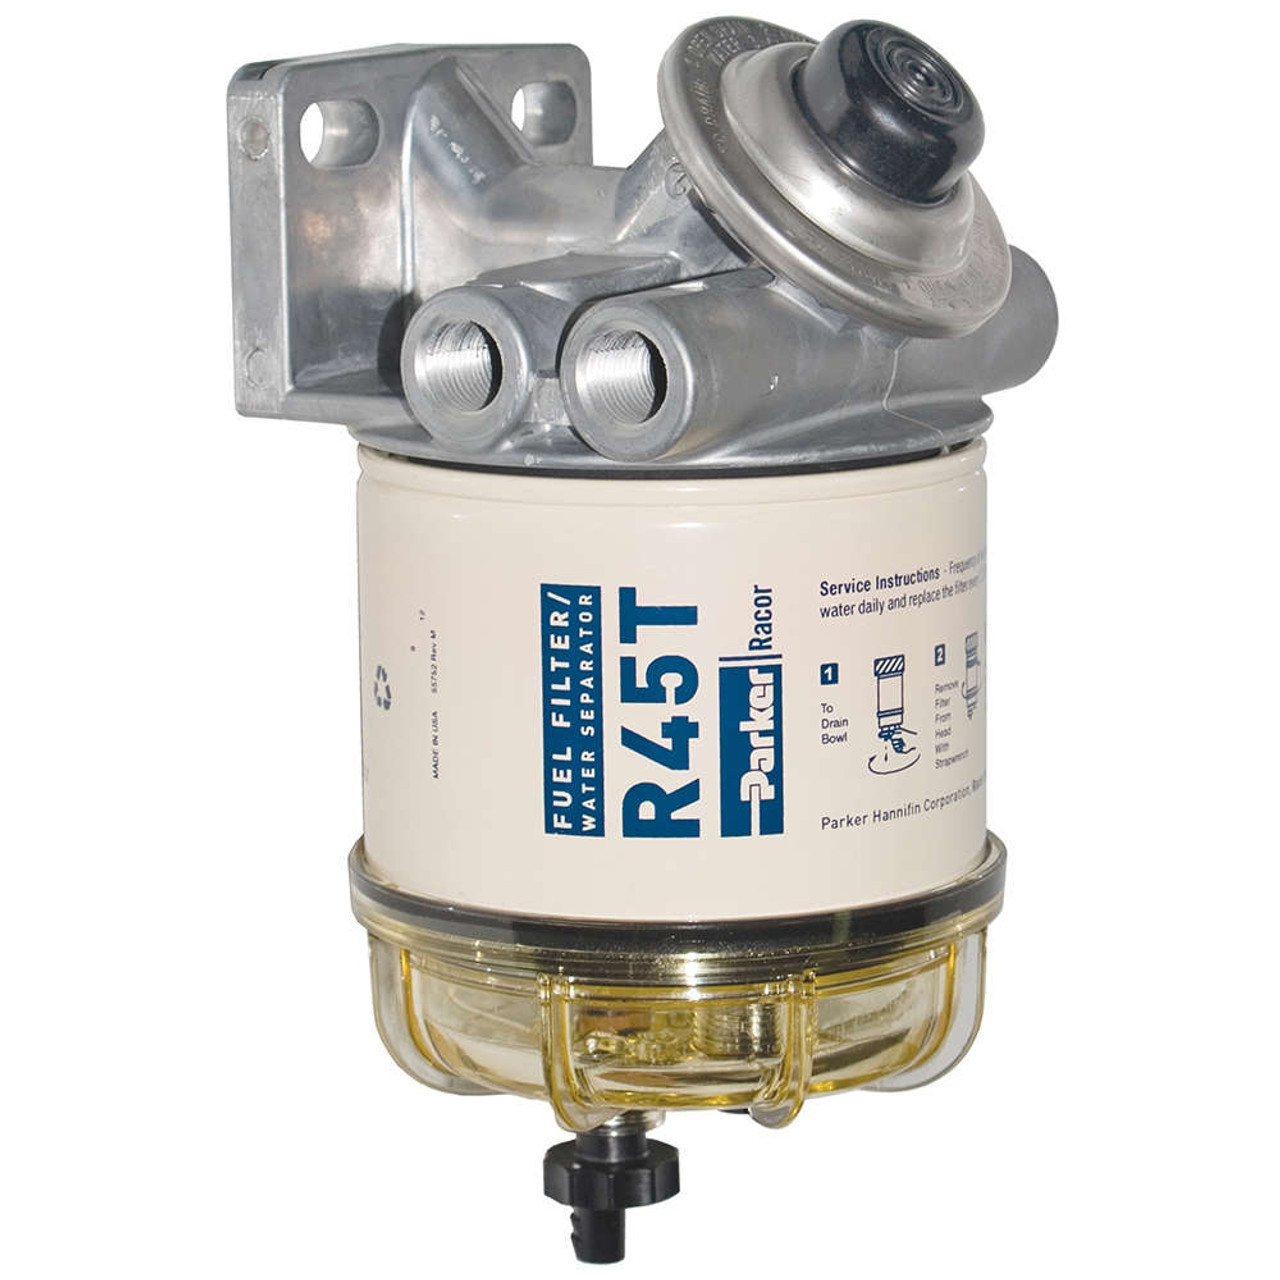 racor 400 series 45 gph diesel spin-on fuel filter - 10 micron - 6